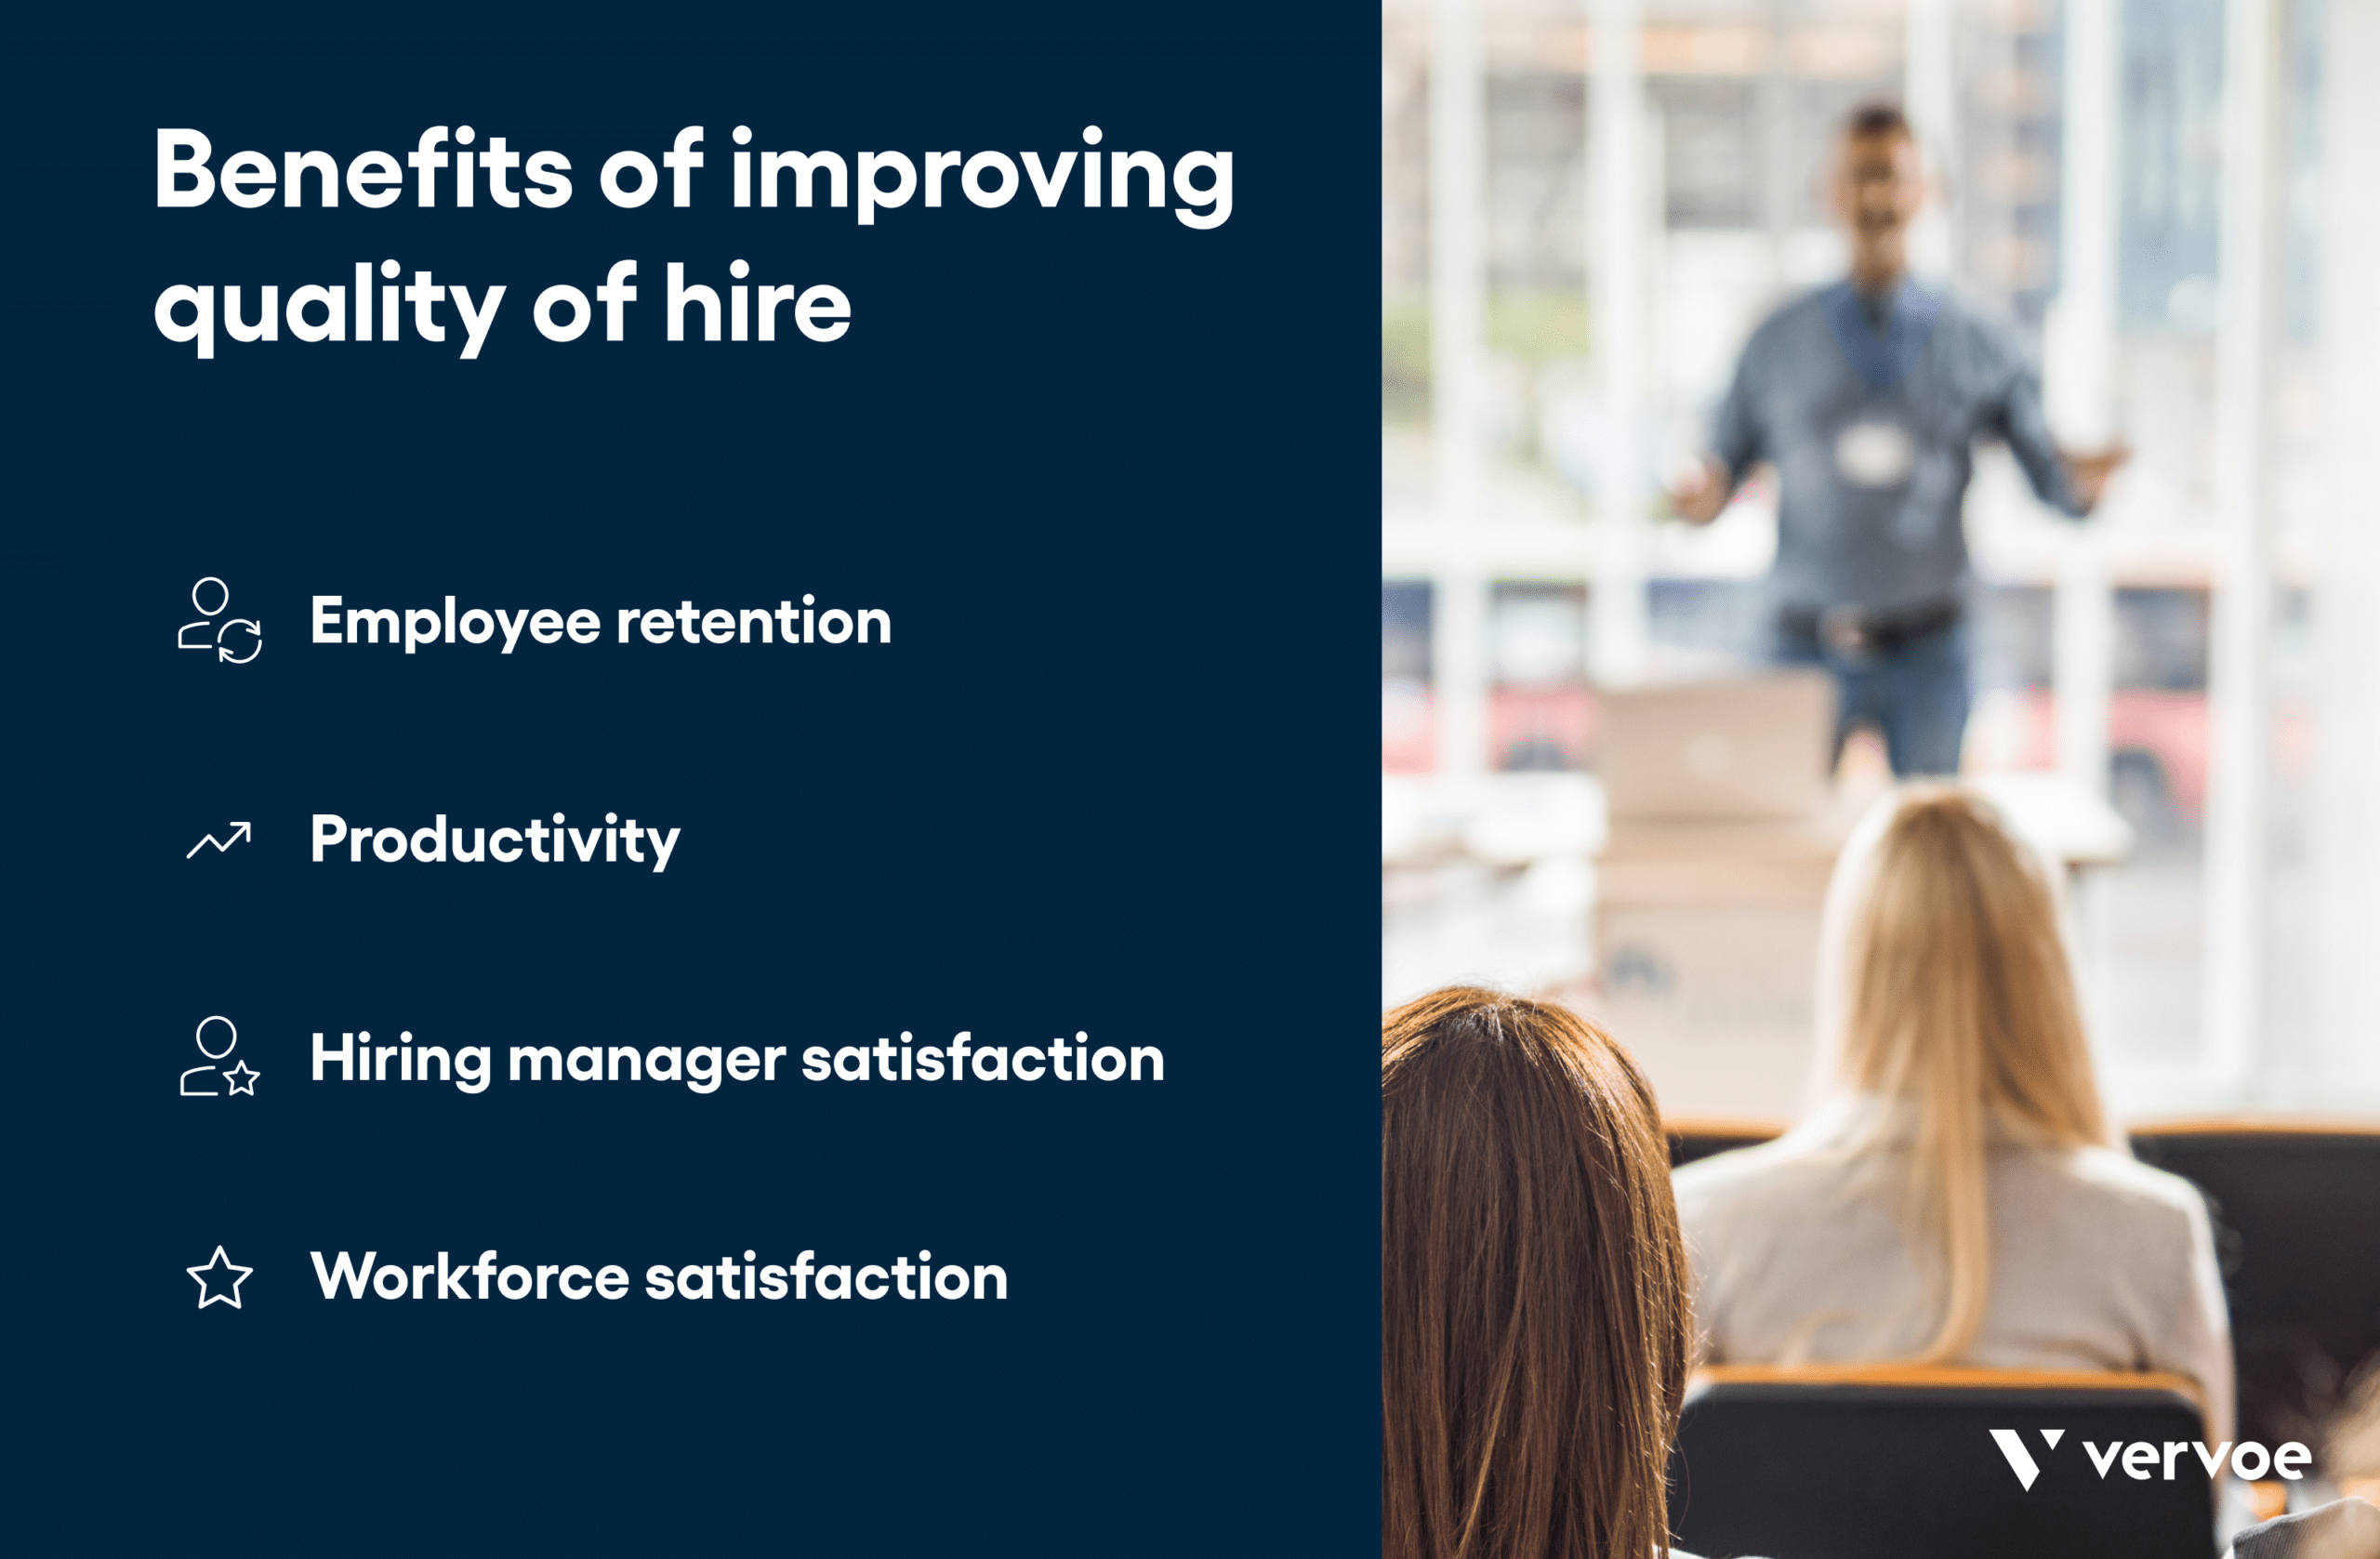 Infographic showing benefits of improving quality of hire